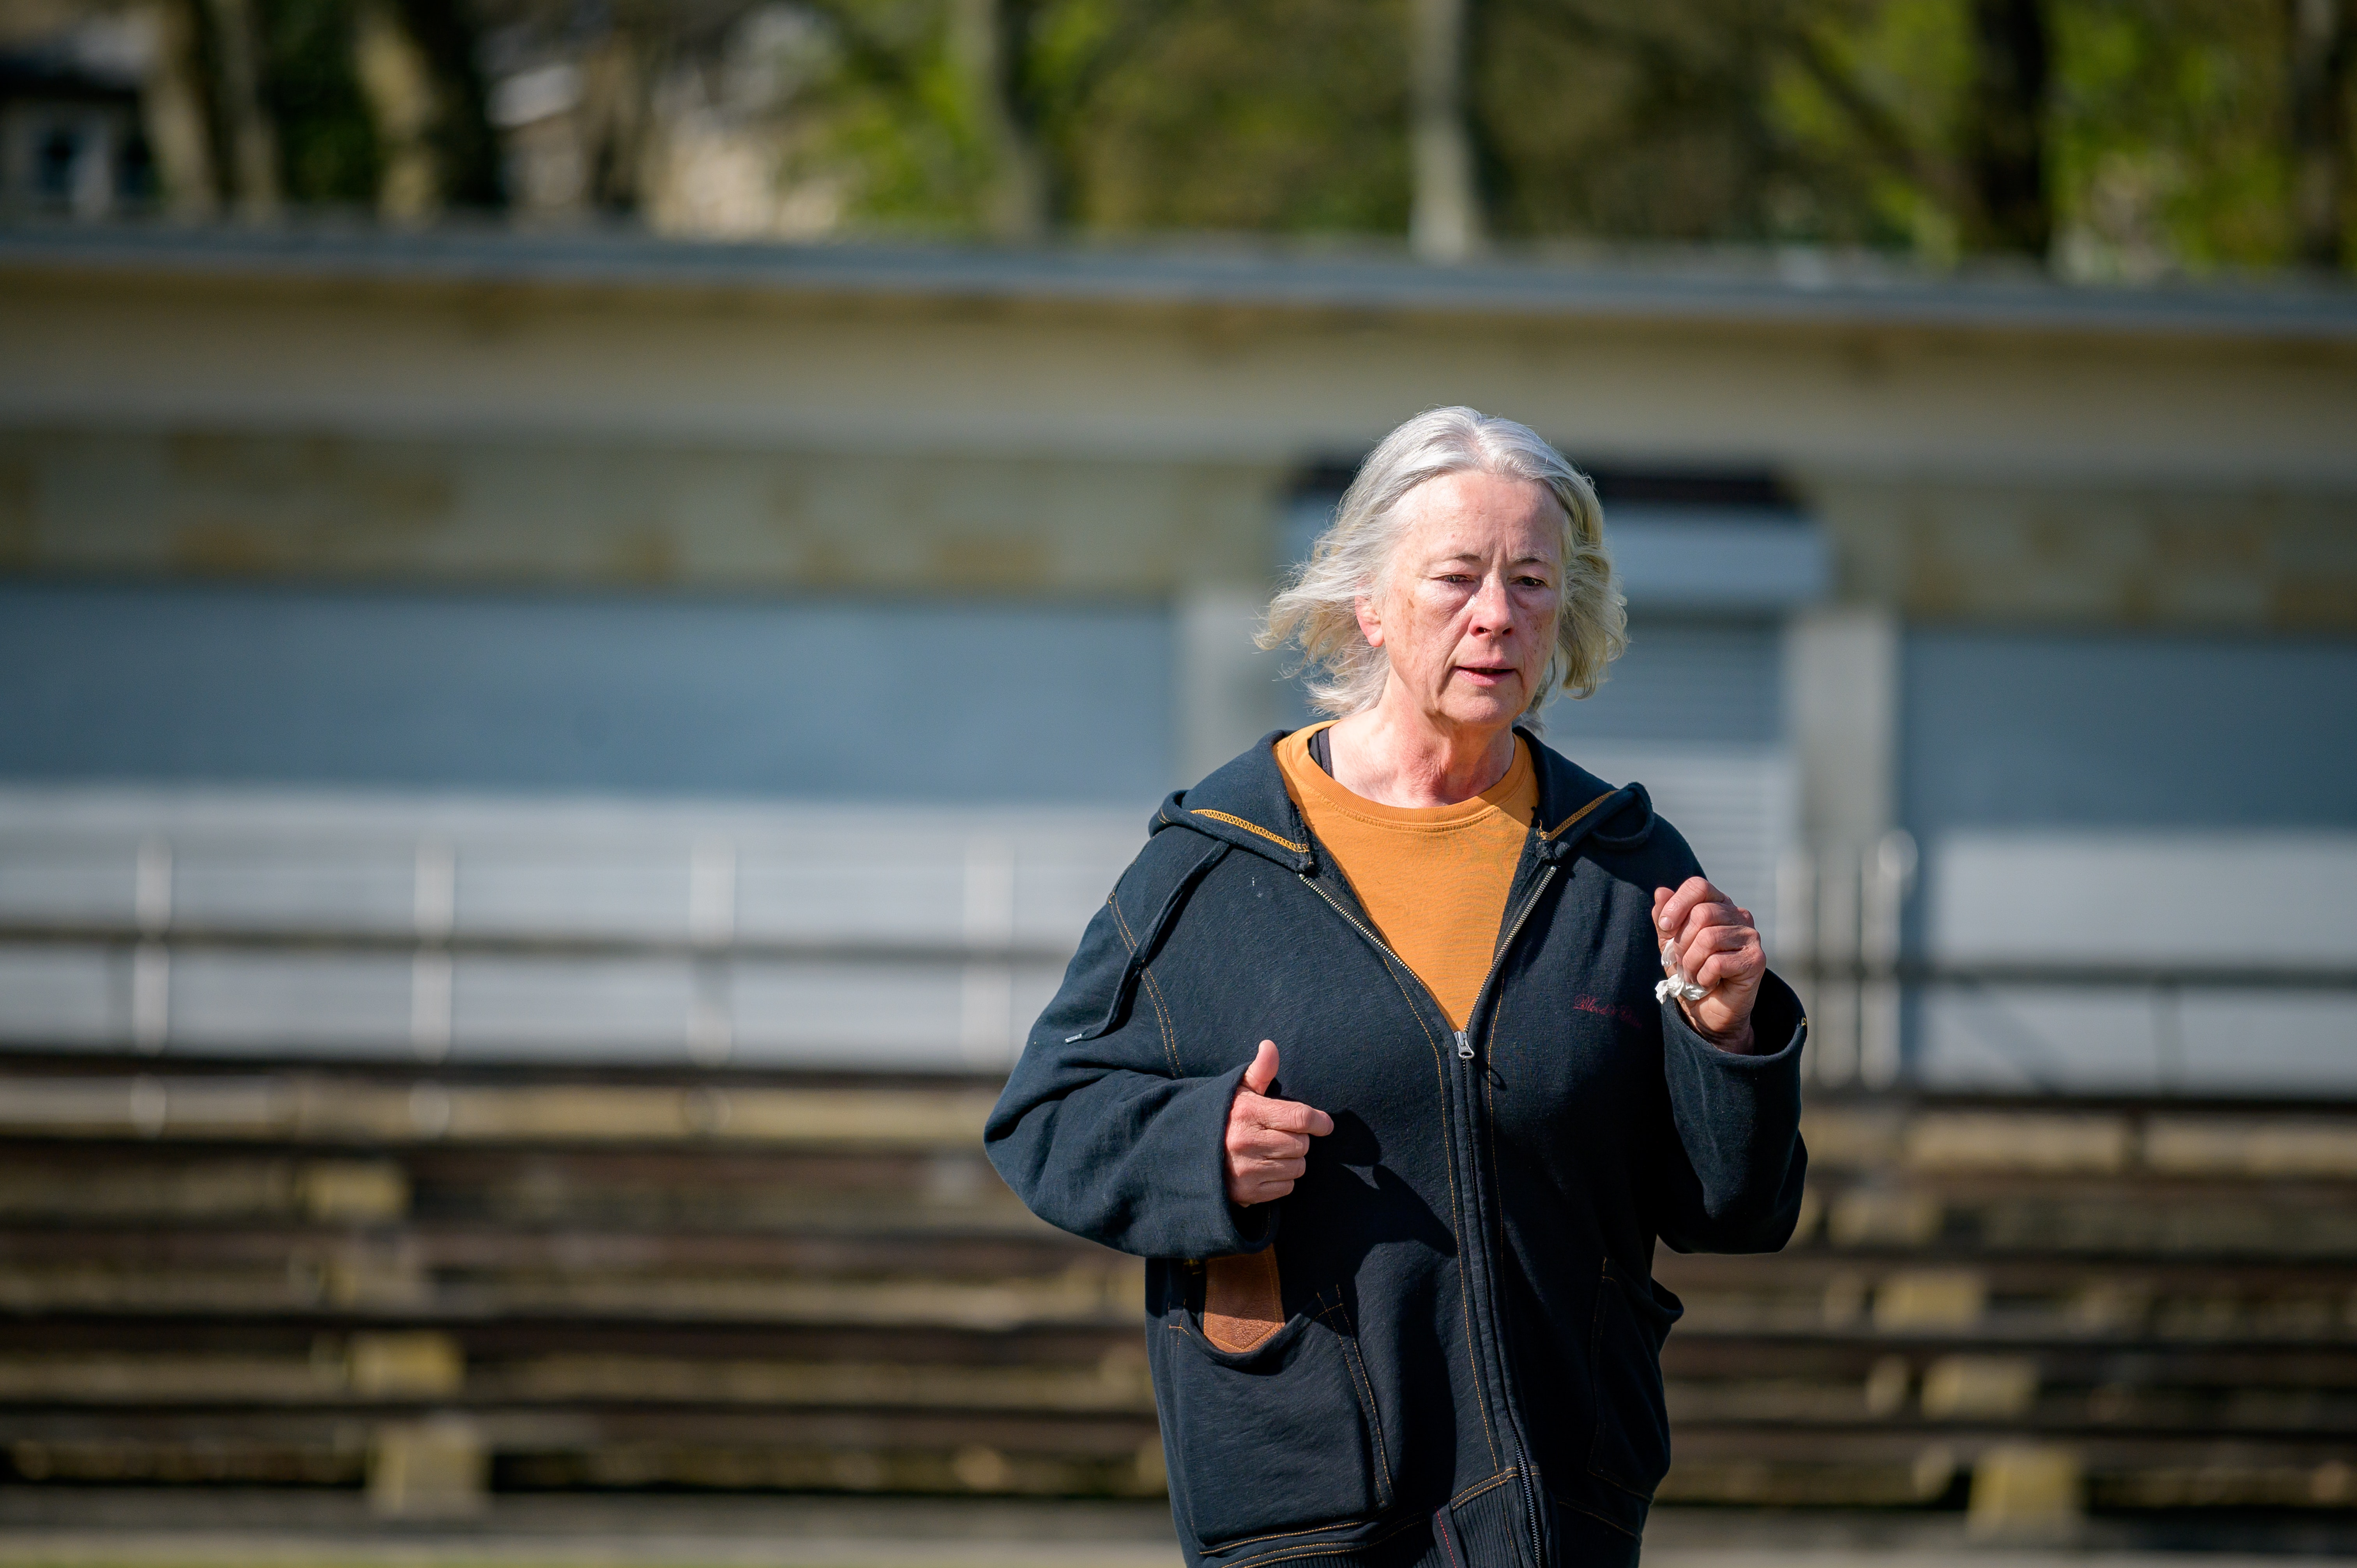 running keeps you young